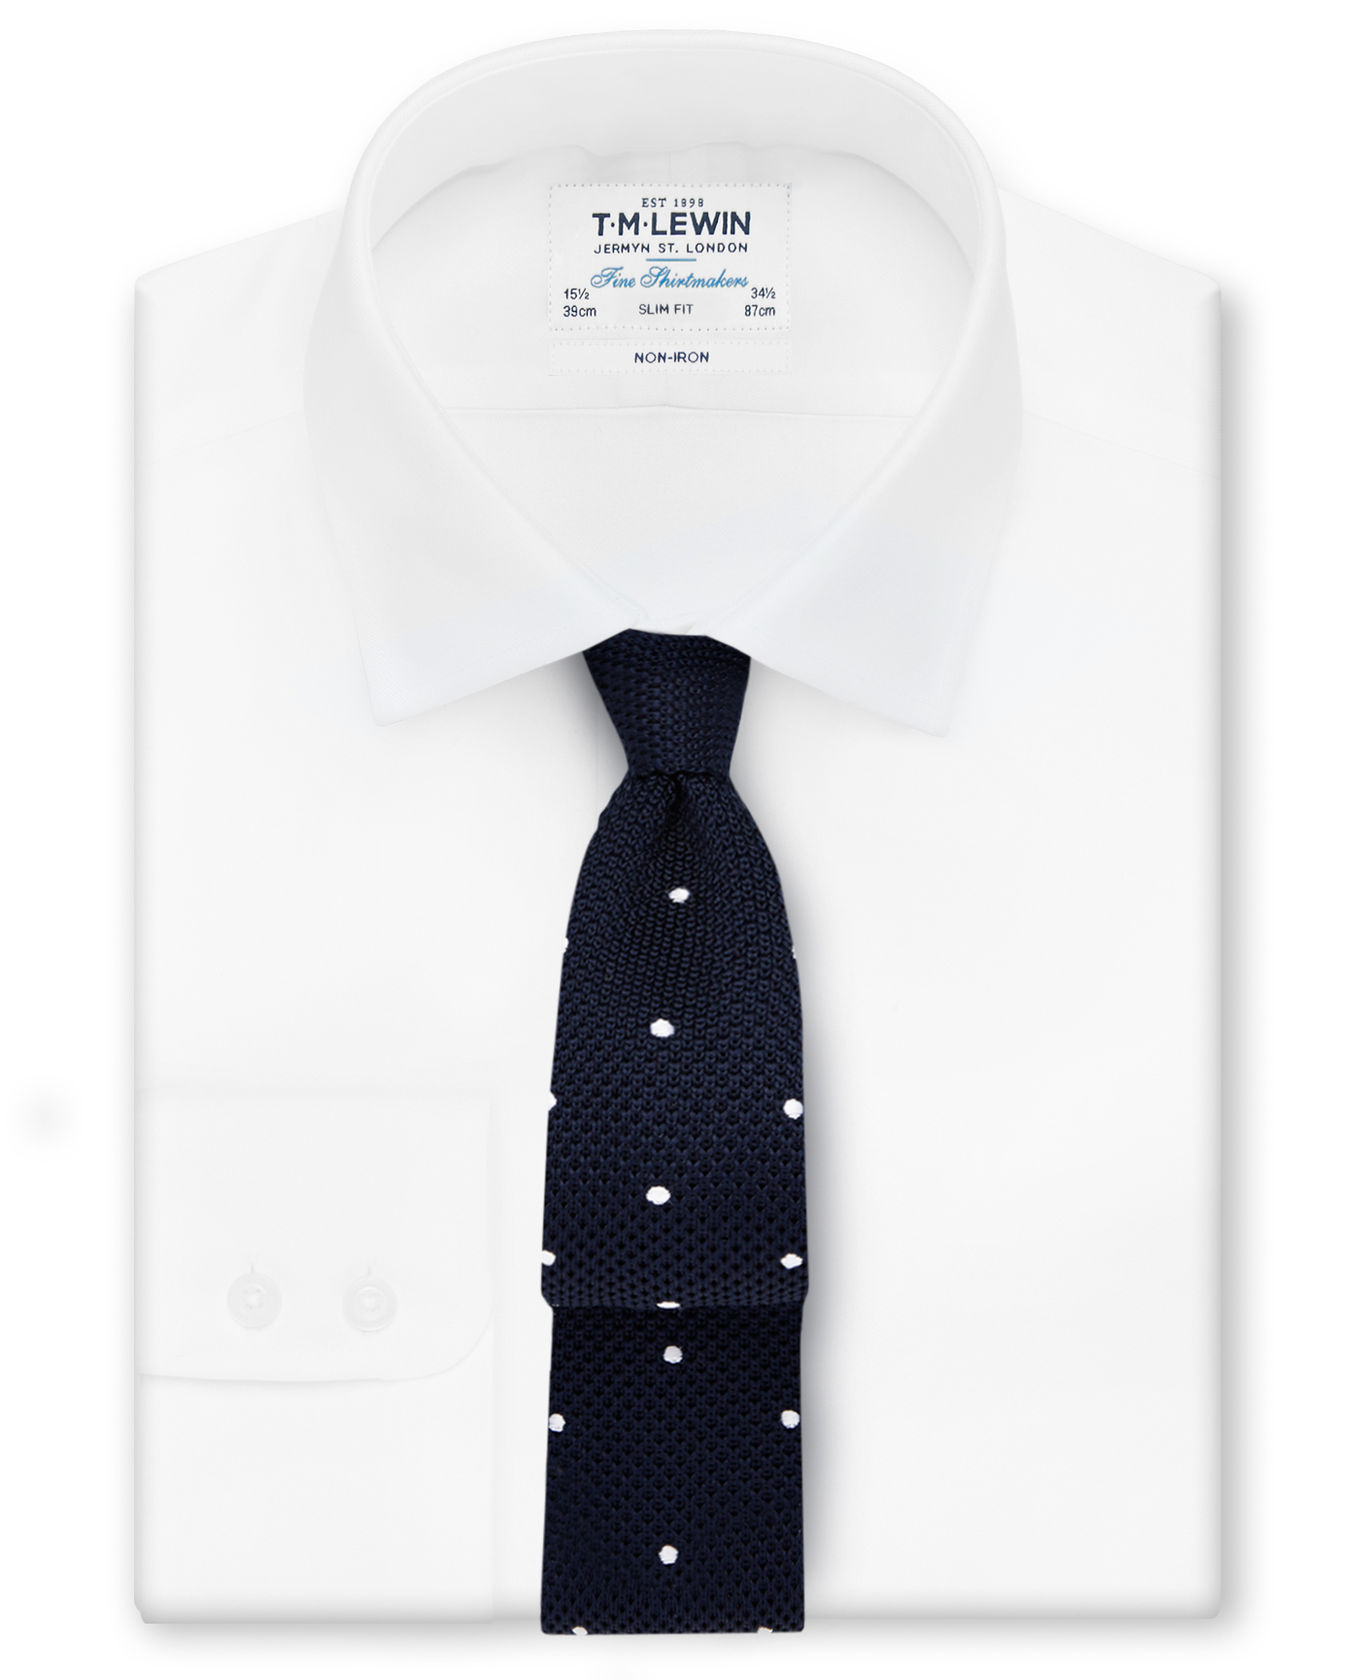 Non-Iron Twill Slim-fit Shirt - T.M.Lewin is a manager's go-to and a quality non-iron option